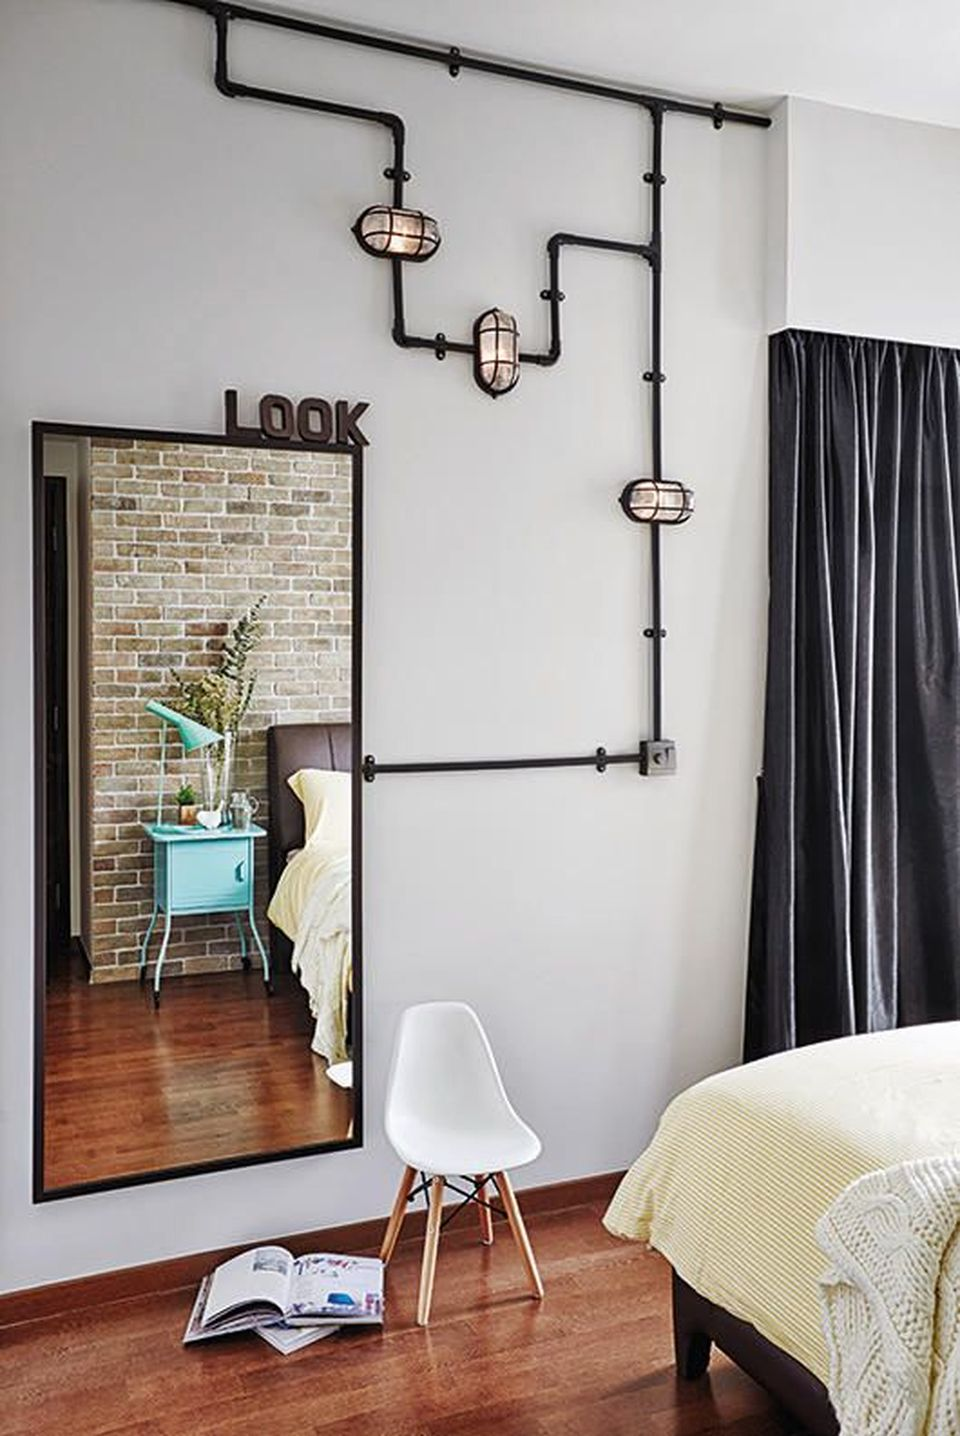 Urban Home Interior Decor Ideas 86 - Hoommy.com